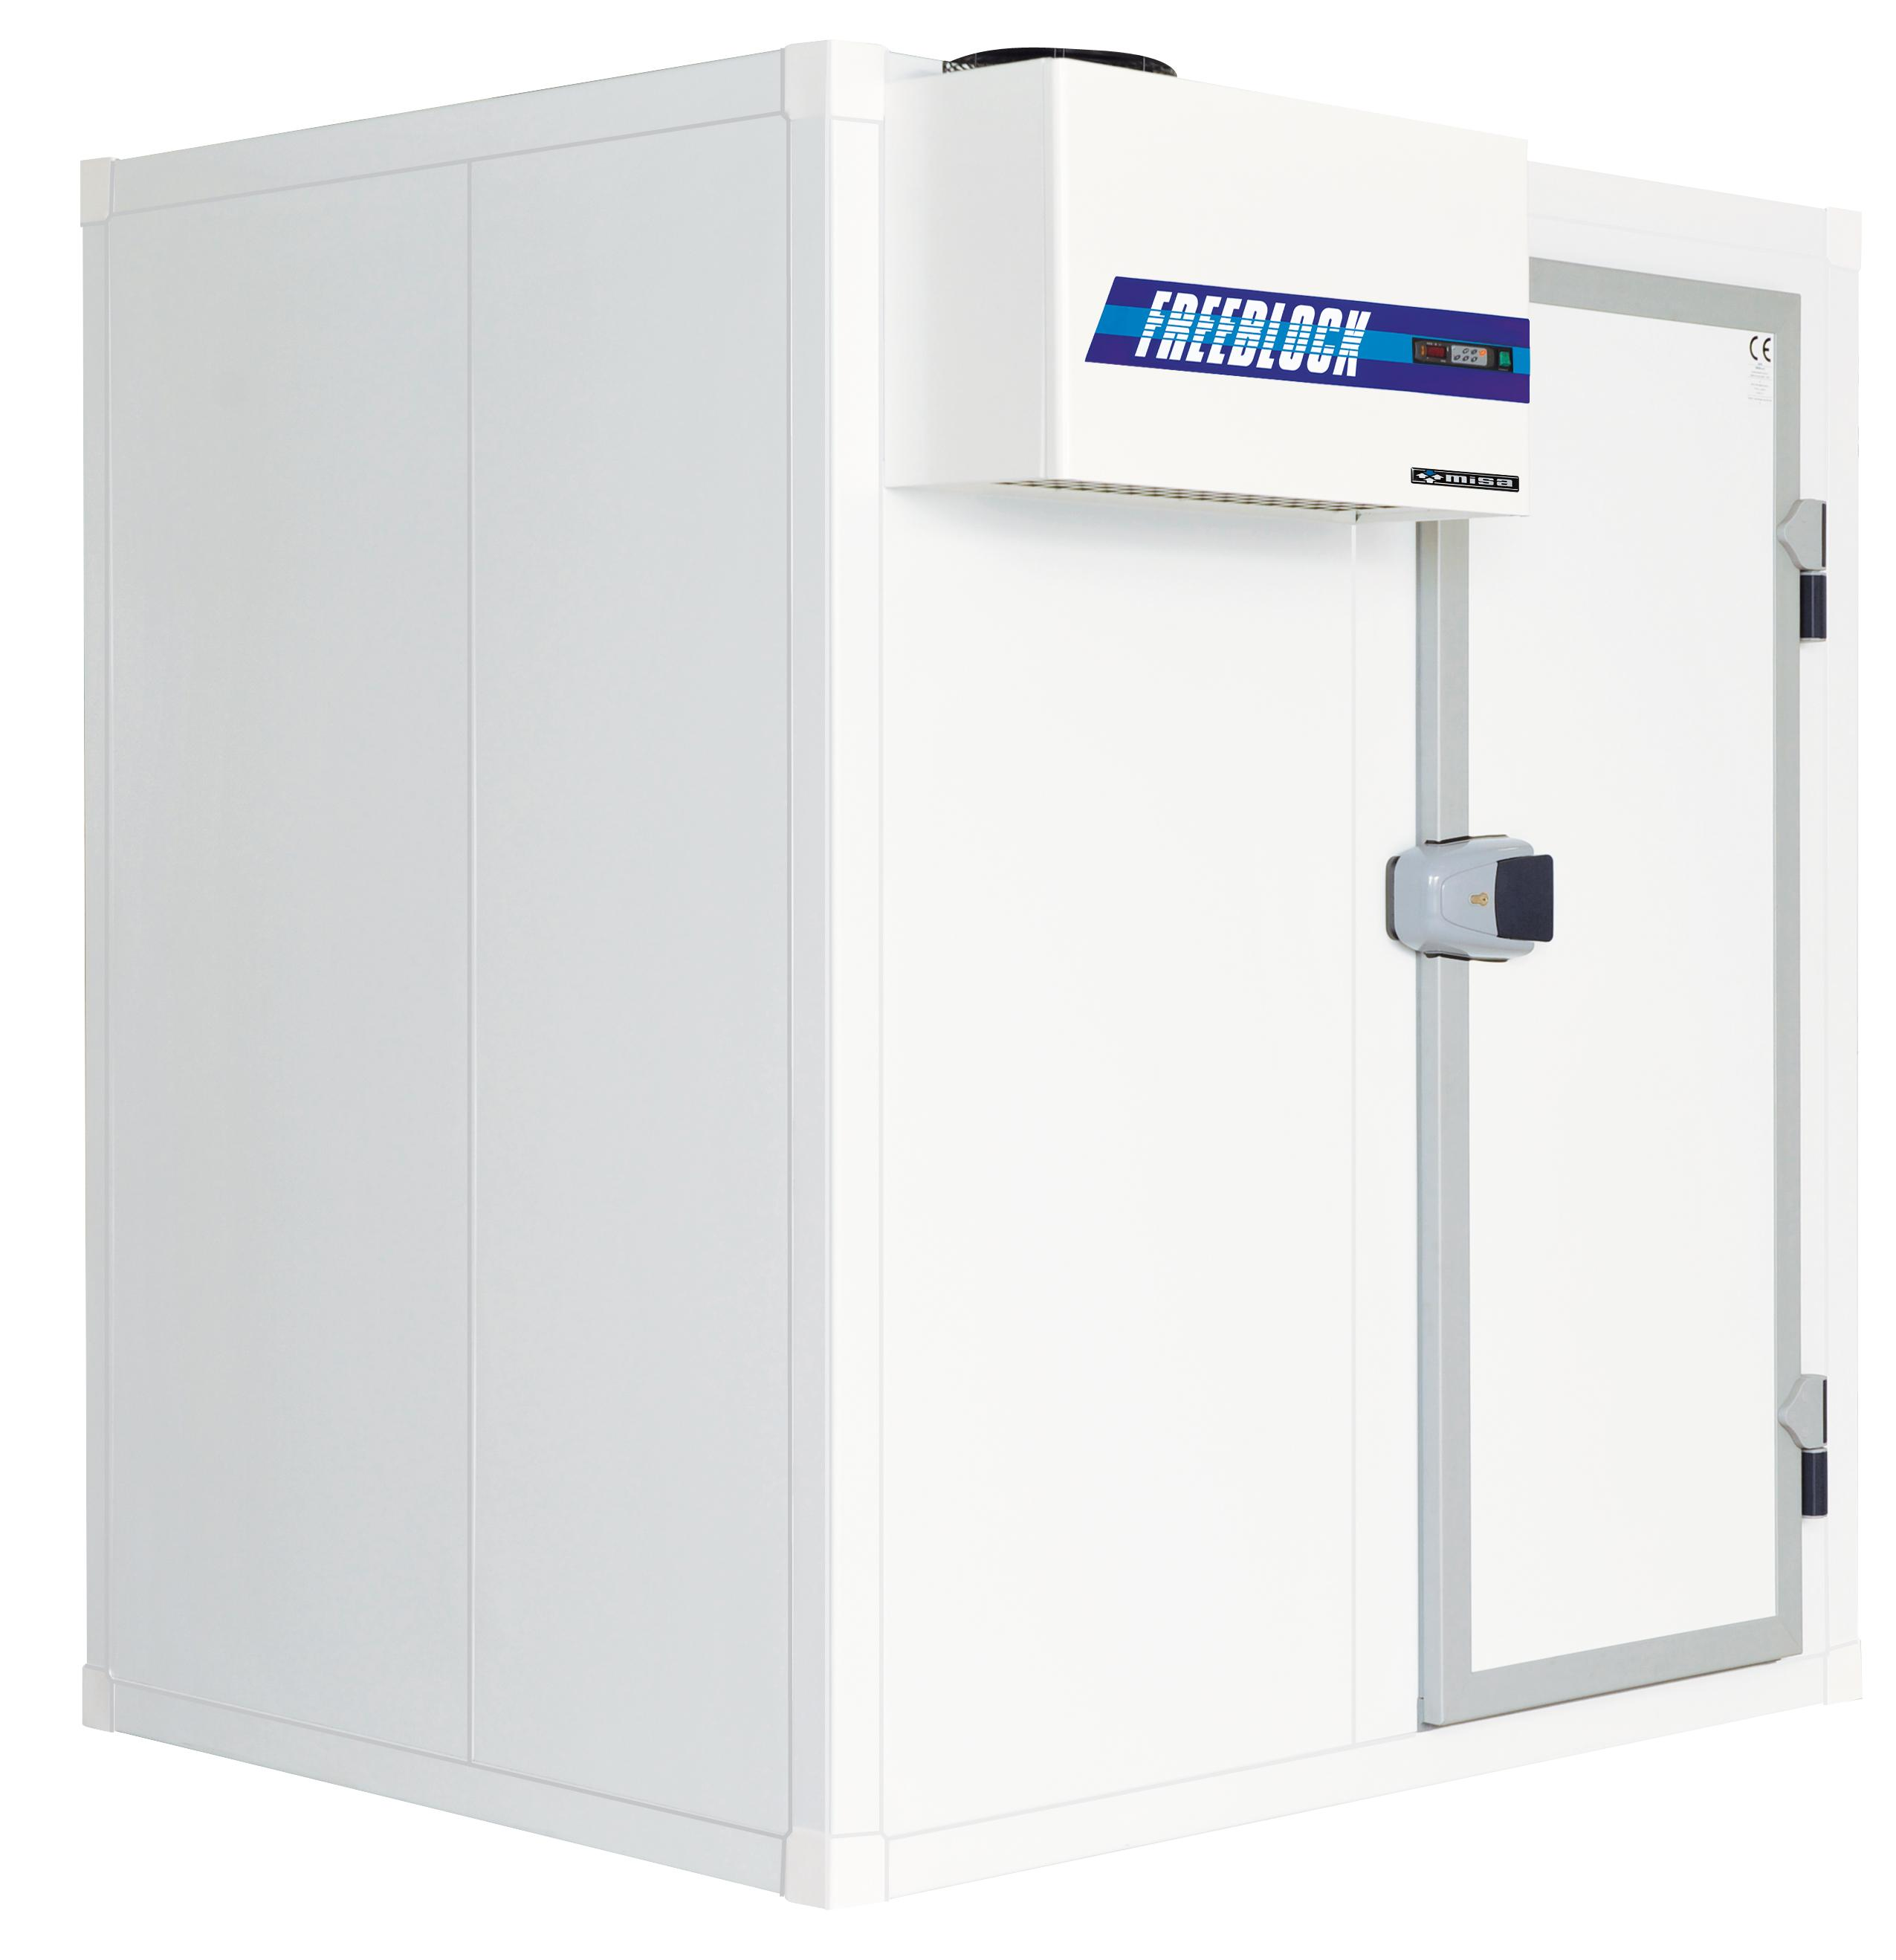 Misa Easy Install -18°C/-21°C Freezer Room with All-in-One FB13N ...